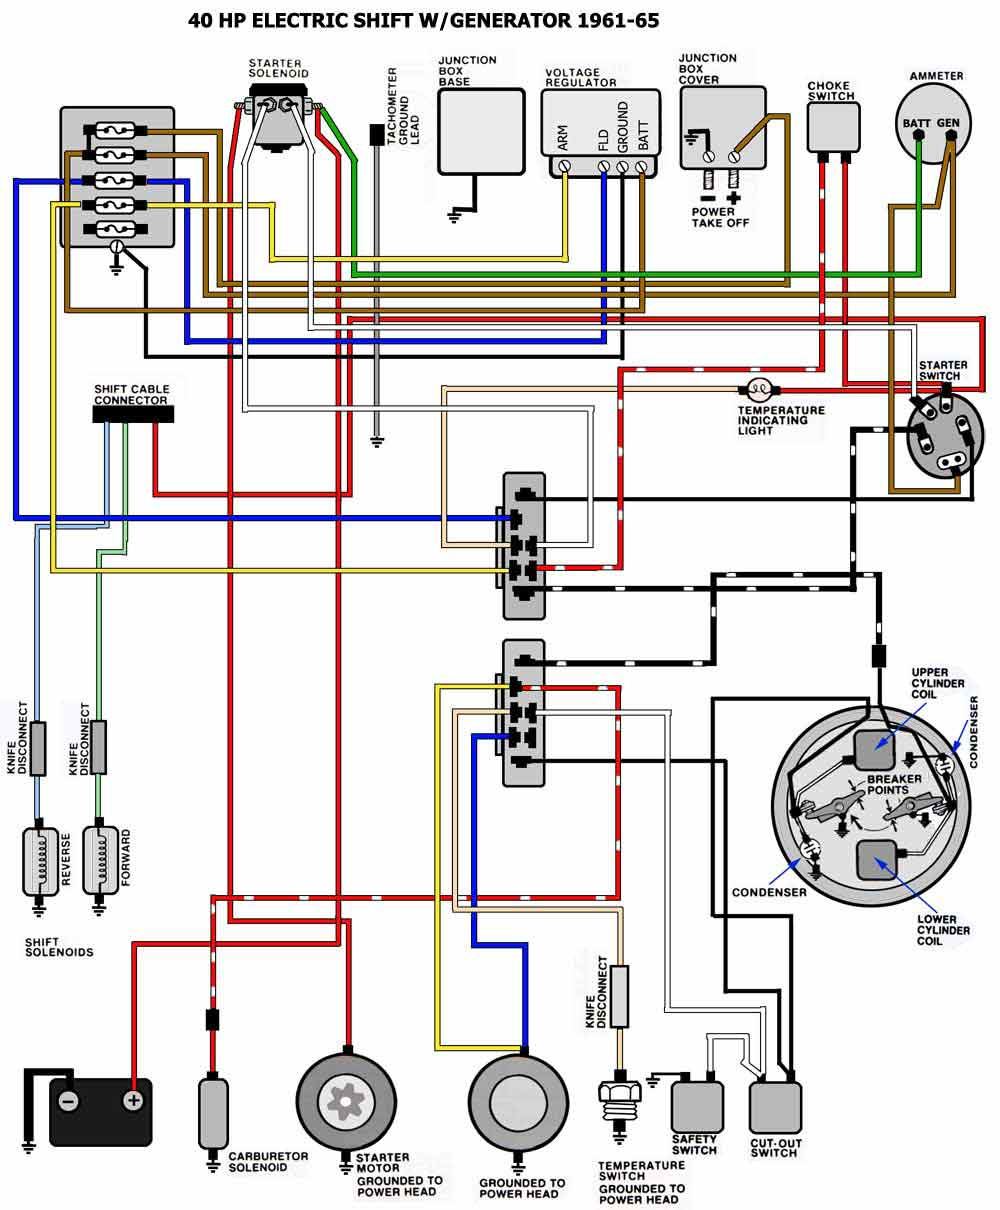 Diagram 1955 Mercury Wiring Diagram Full Version Hd Quality Wiring Diagram Schematic Pr Media90 It